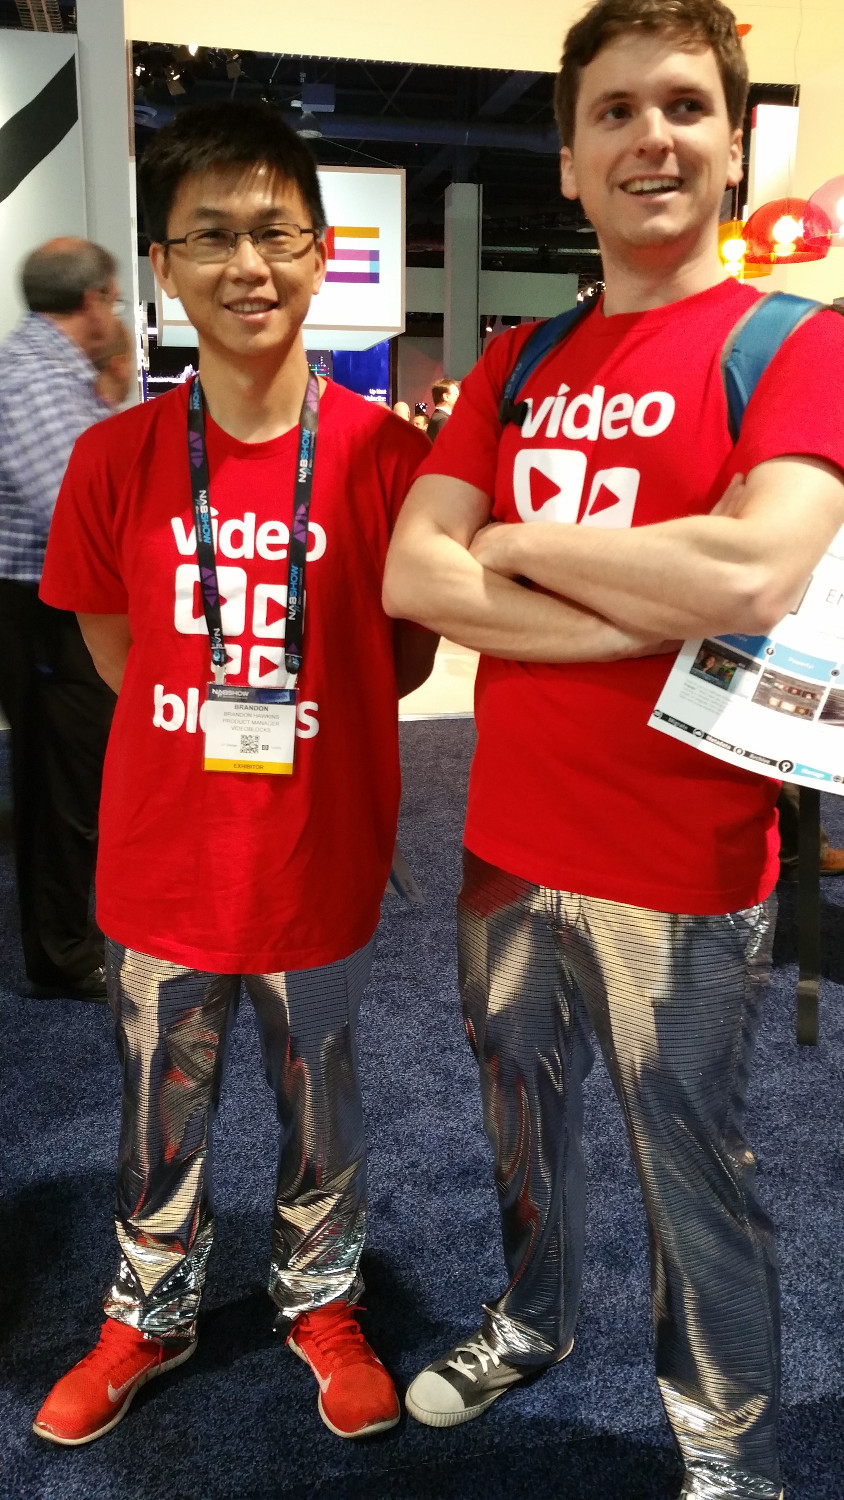 Video Blocks are killing the game with these baller pants